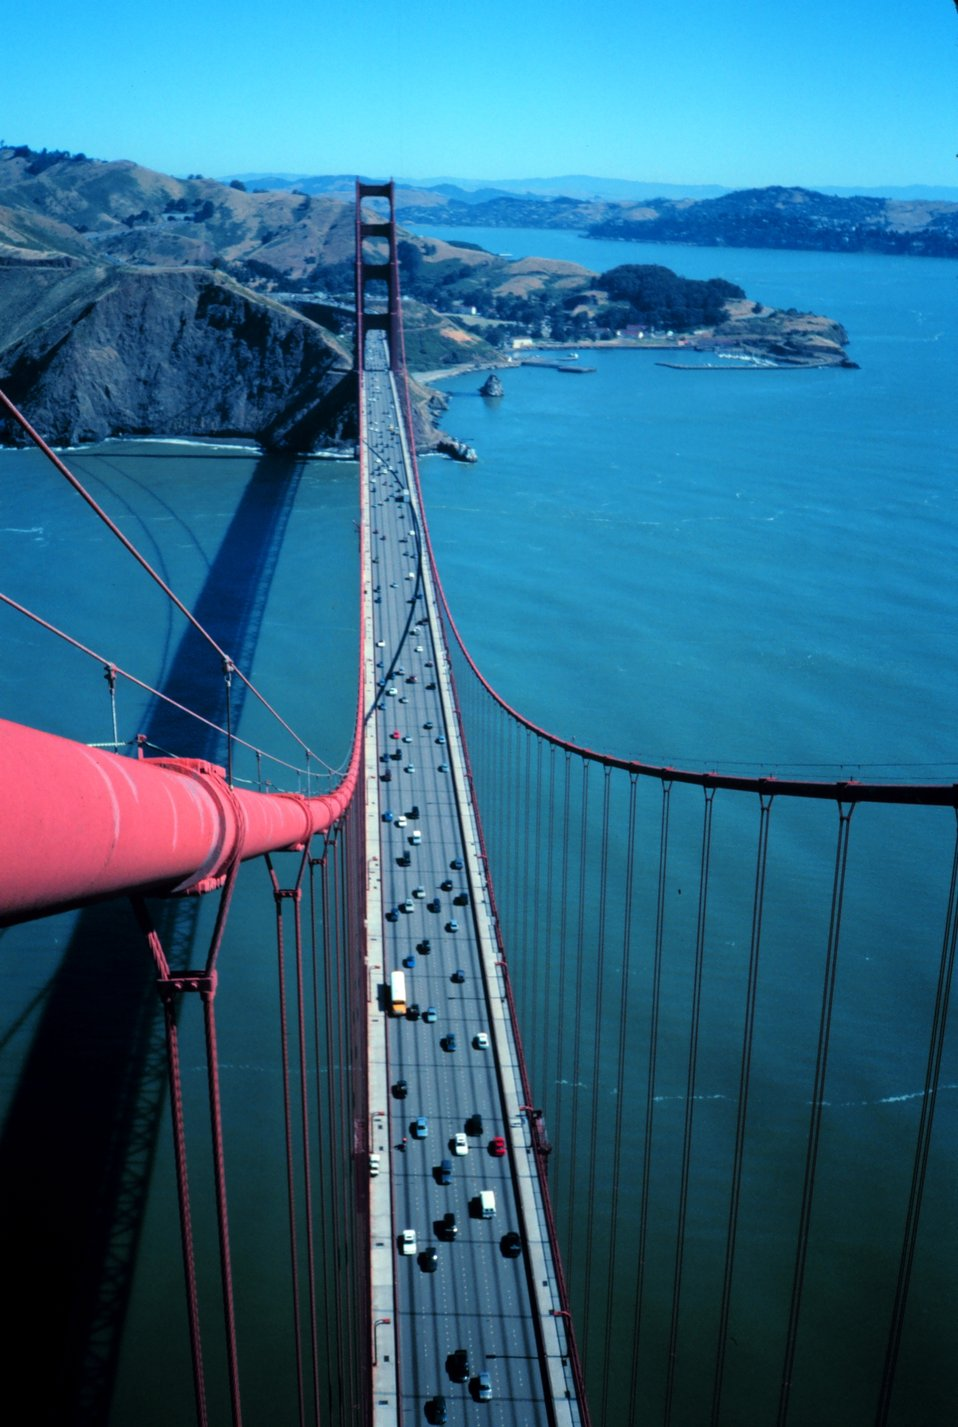 View from the top of the south tower of the Golden Gate Bridge looking north.